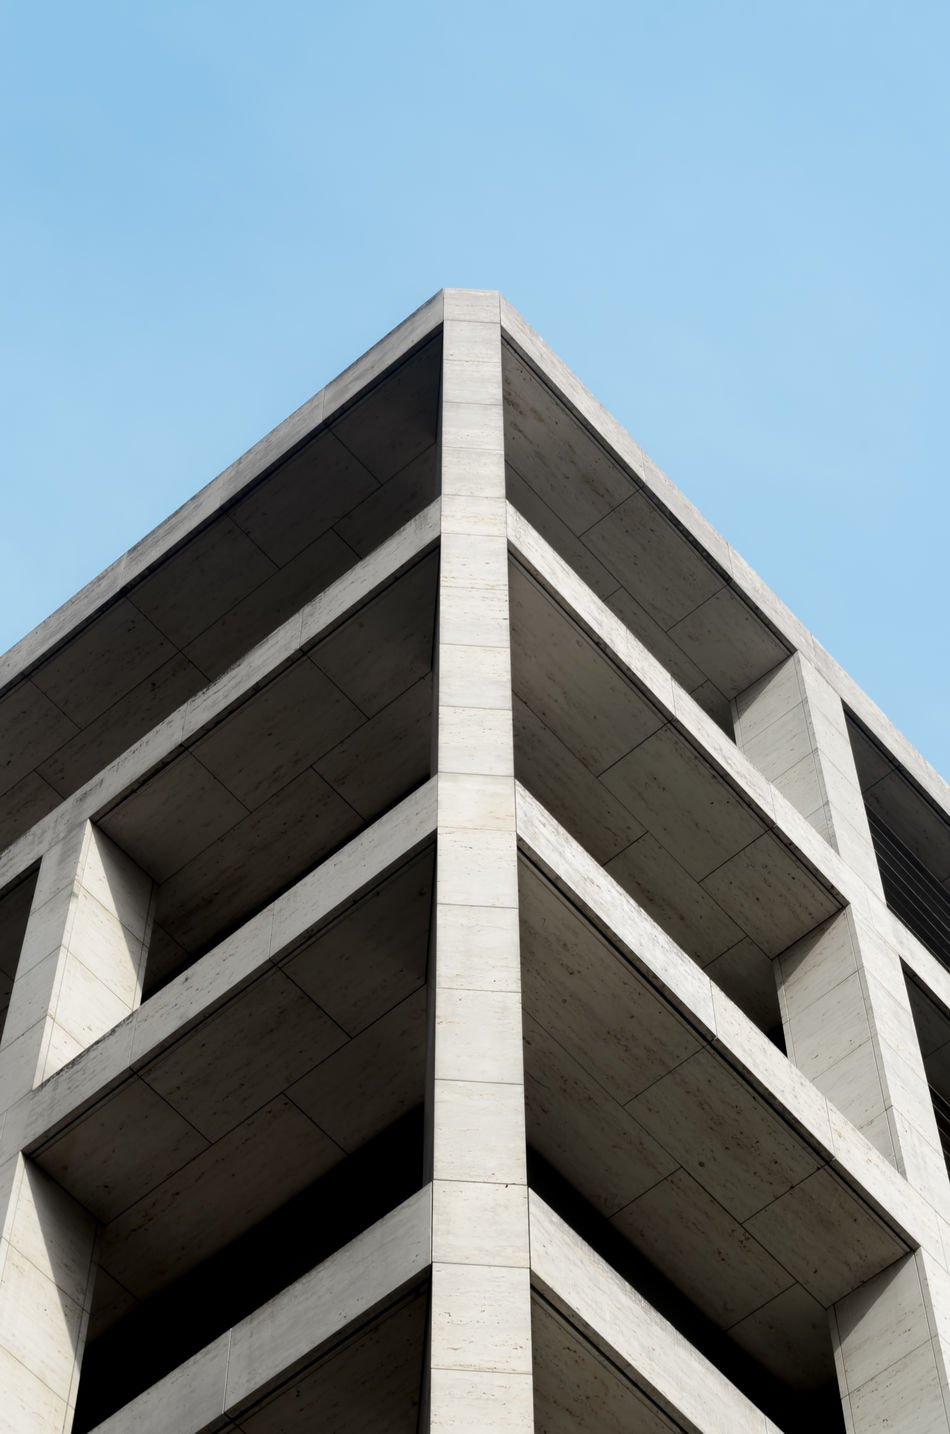 Architecture Low Angle View Built Structure Building Exterior City Modern London Office Building Looking Up Architectural Minimal Minimalism Building